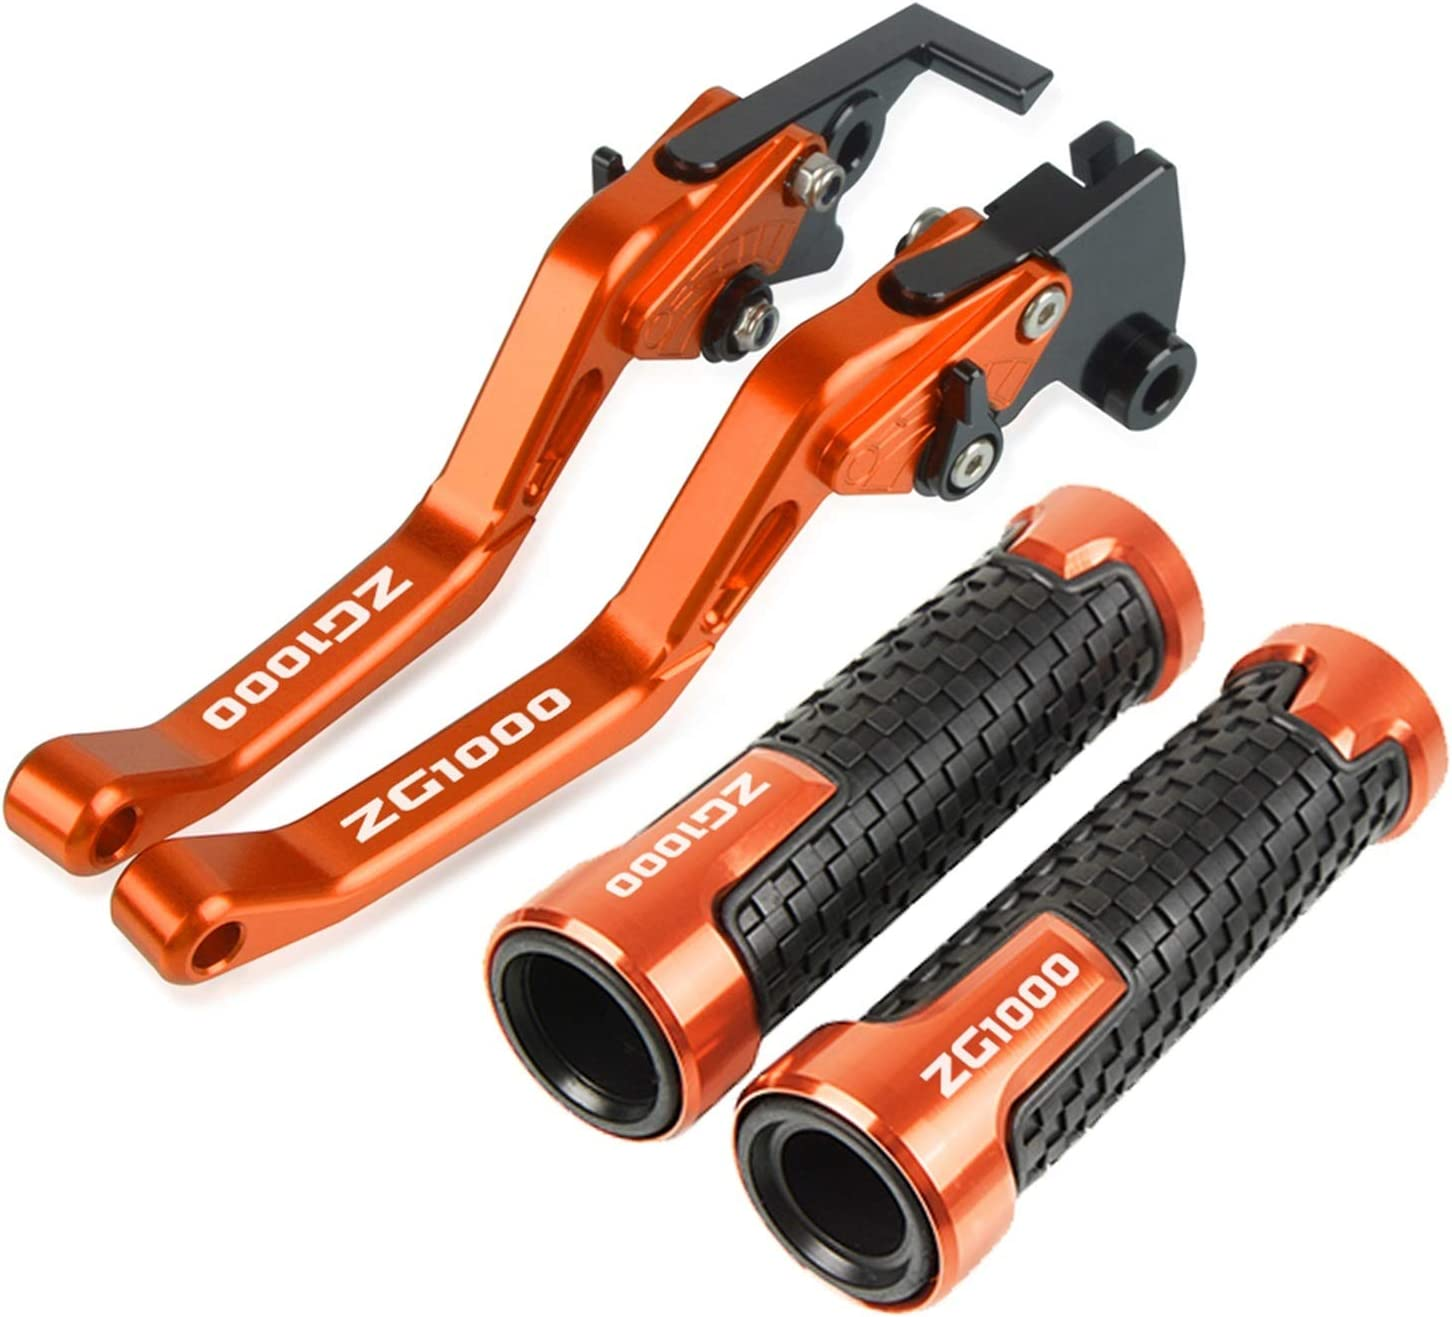 WRDD Limited Special Price Motorbike Grips for Kawasaki ZG1000 Selling 2003 2001 2002 ZG 1000